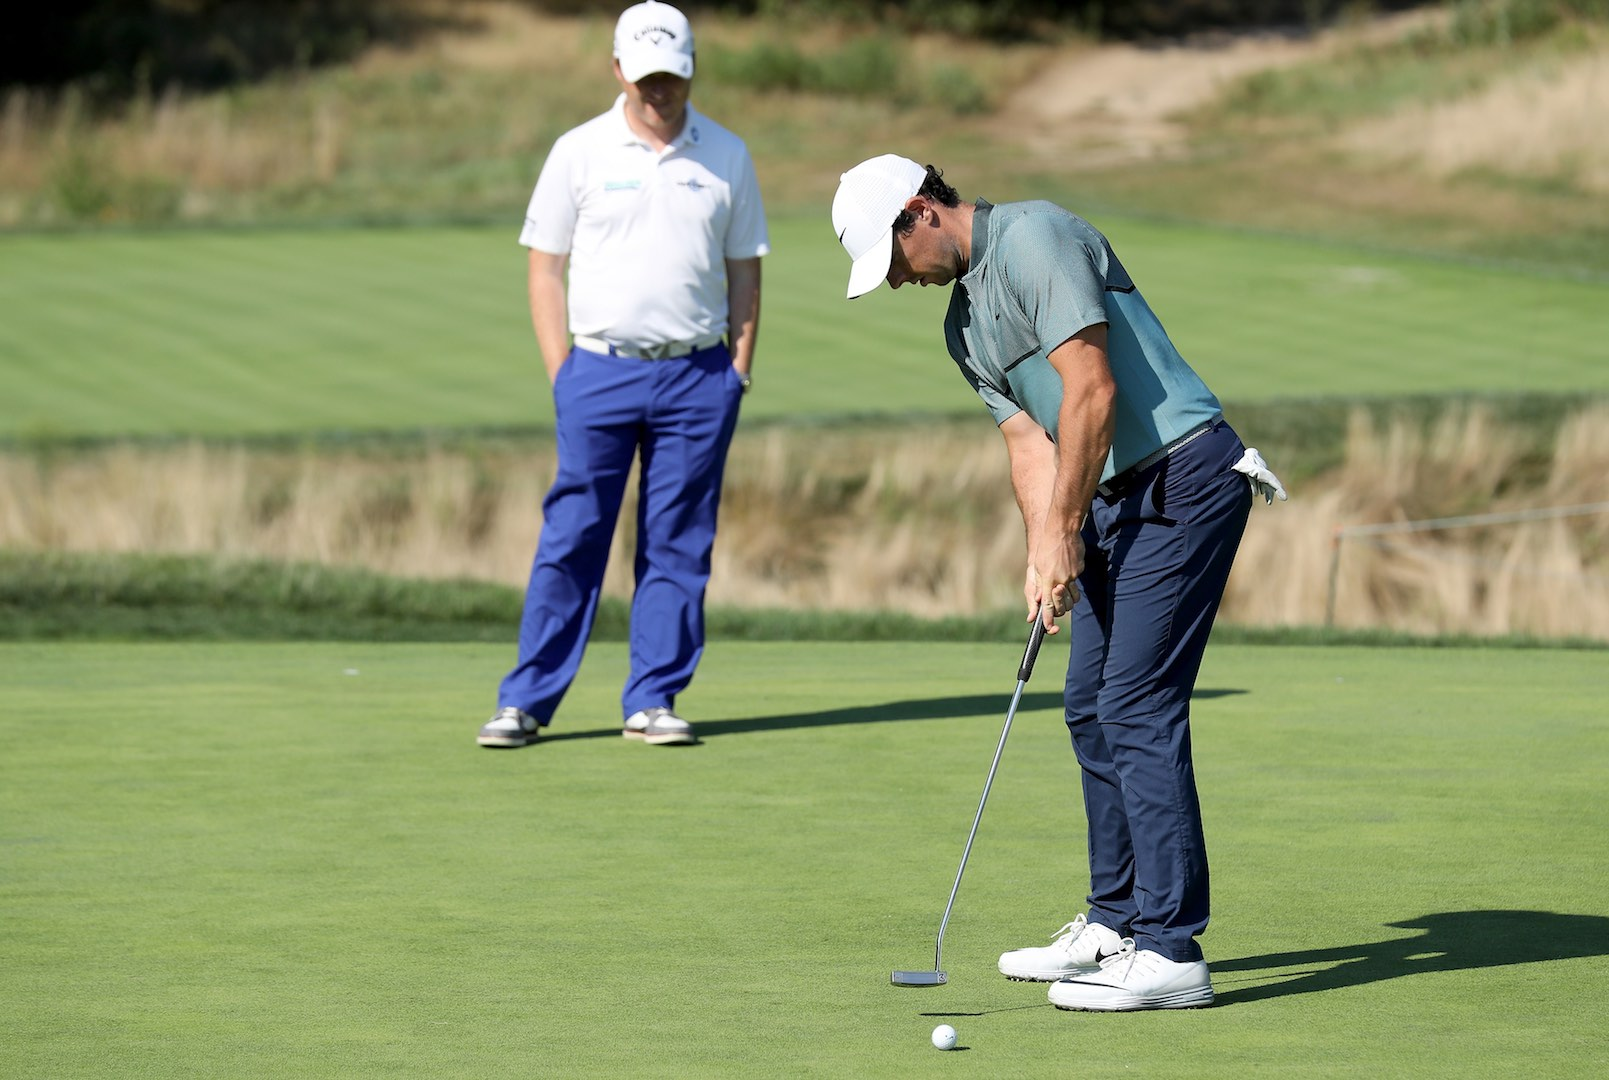 Which Scotty Is Rory Putting With?